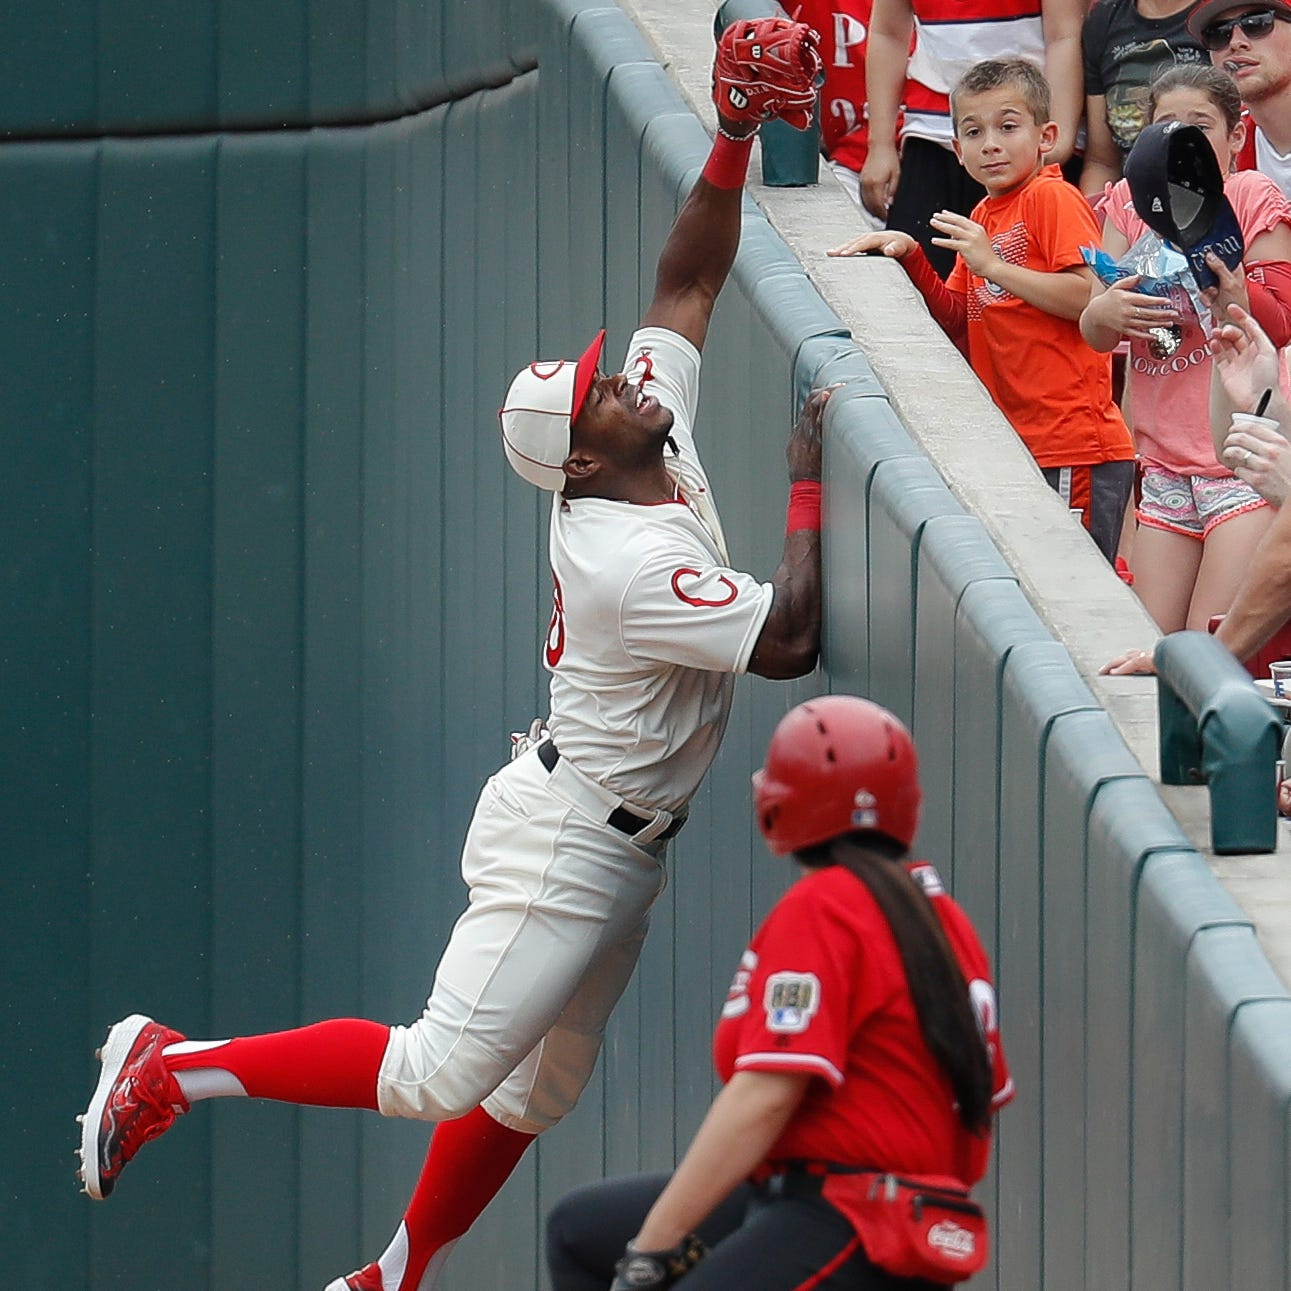 Cincinnati Reds notes: Yasiel Puig hopes to return to lineup Wednesday